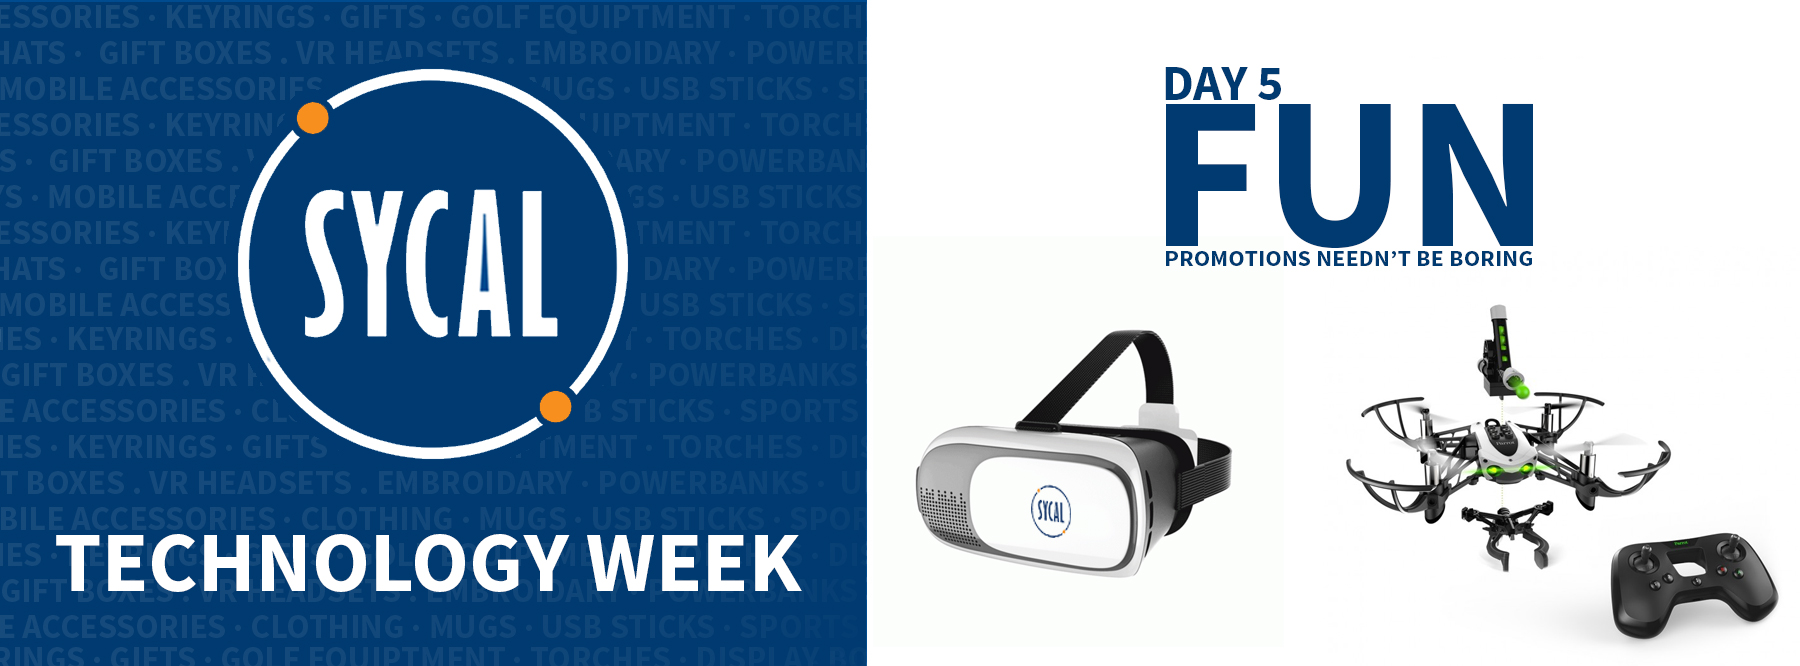 promotional vr headsets